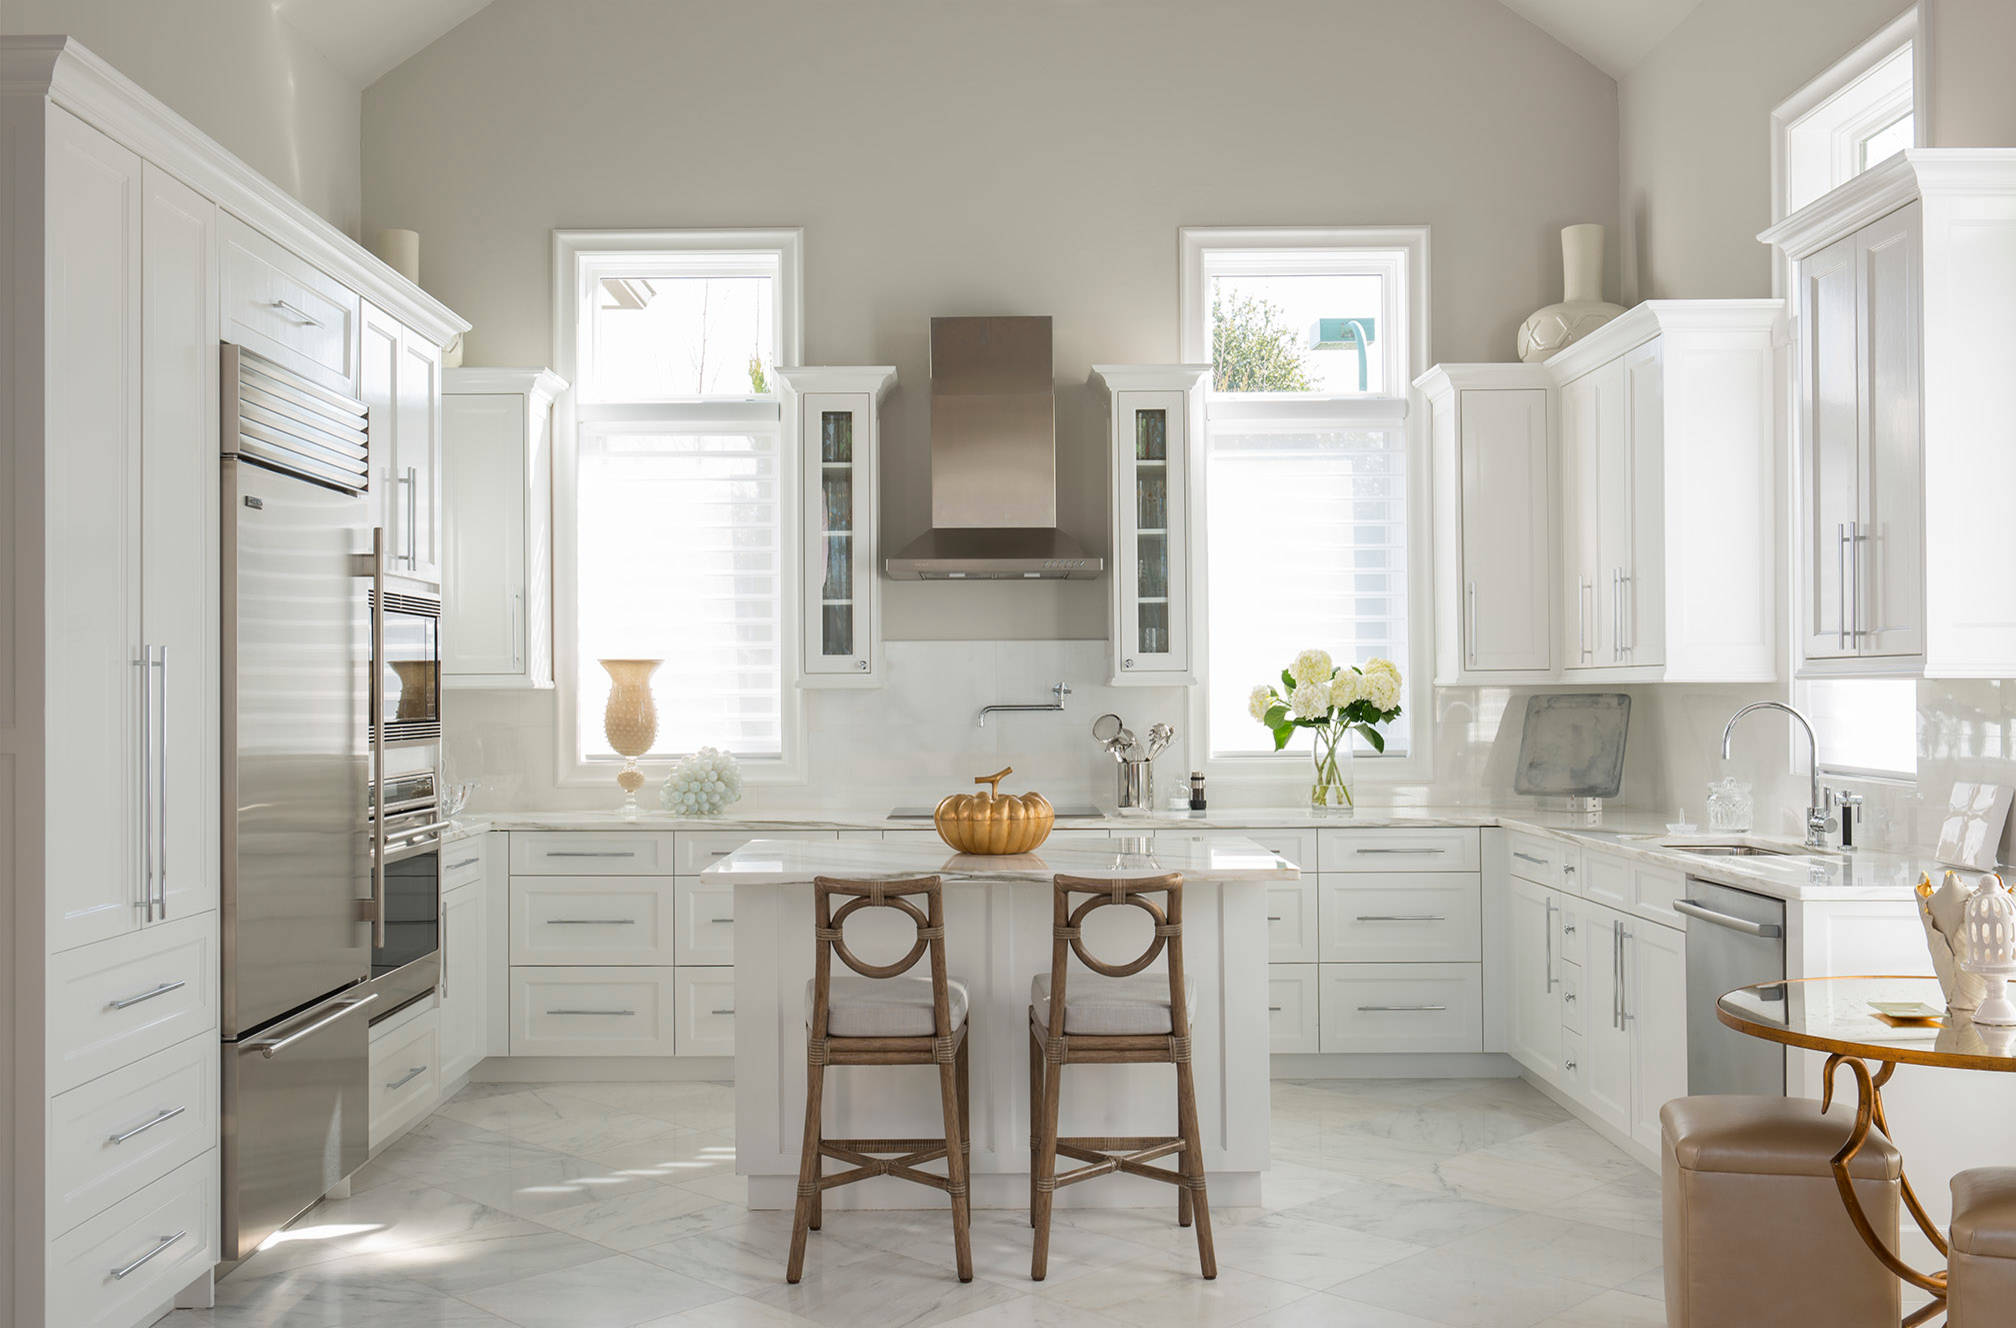 What Color Should I Paint My Kitchen With White Cabinets 7 Best Choices To Consider Jimenezphoto